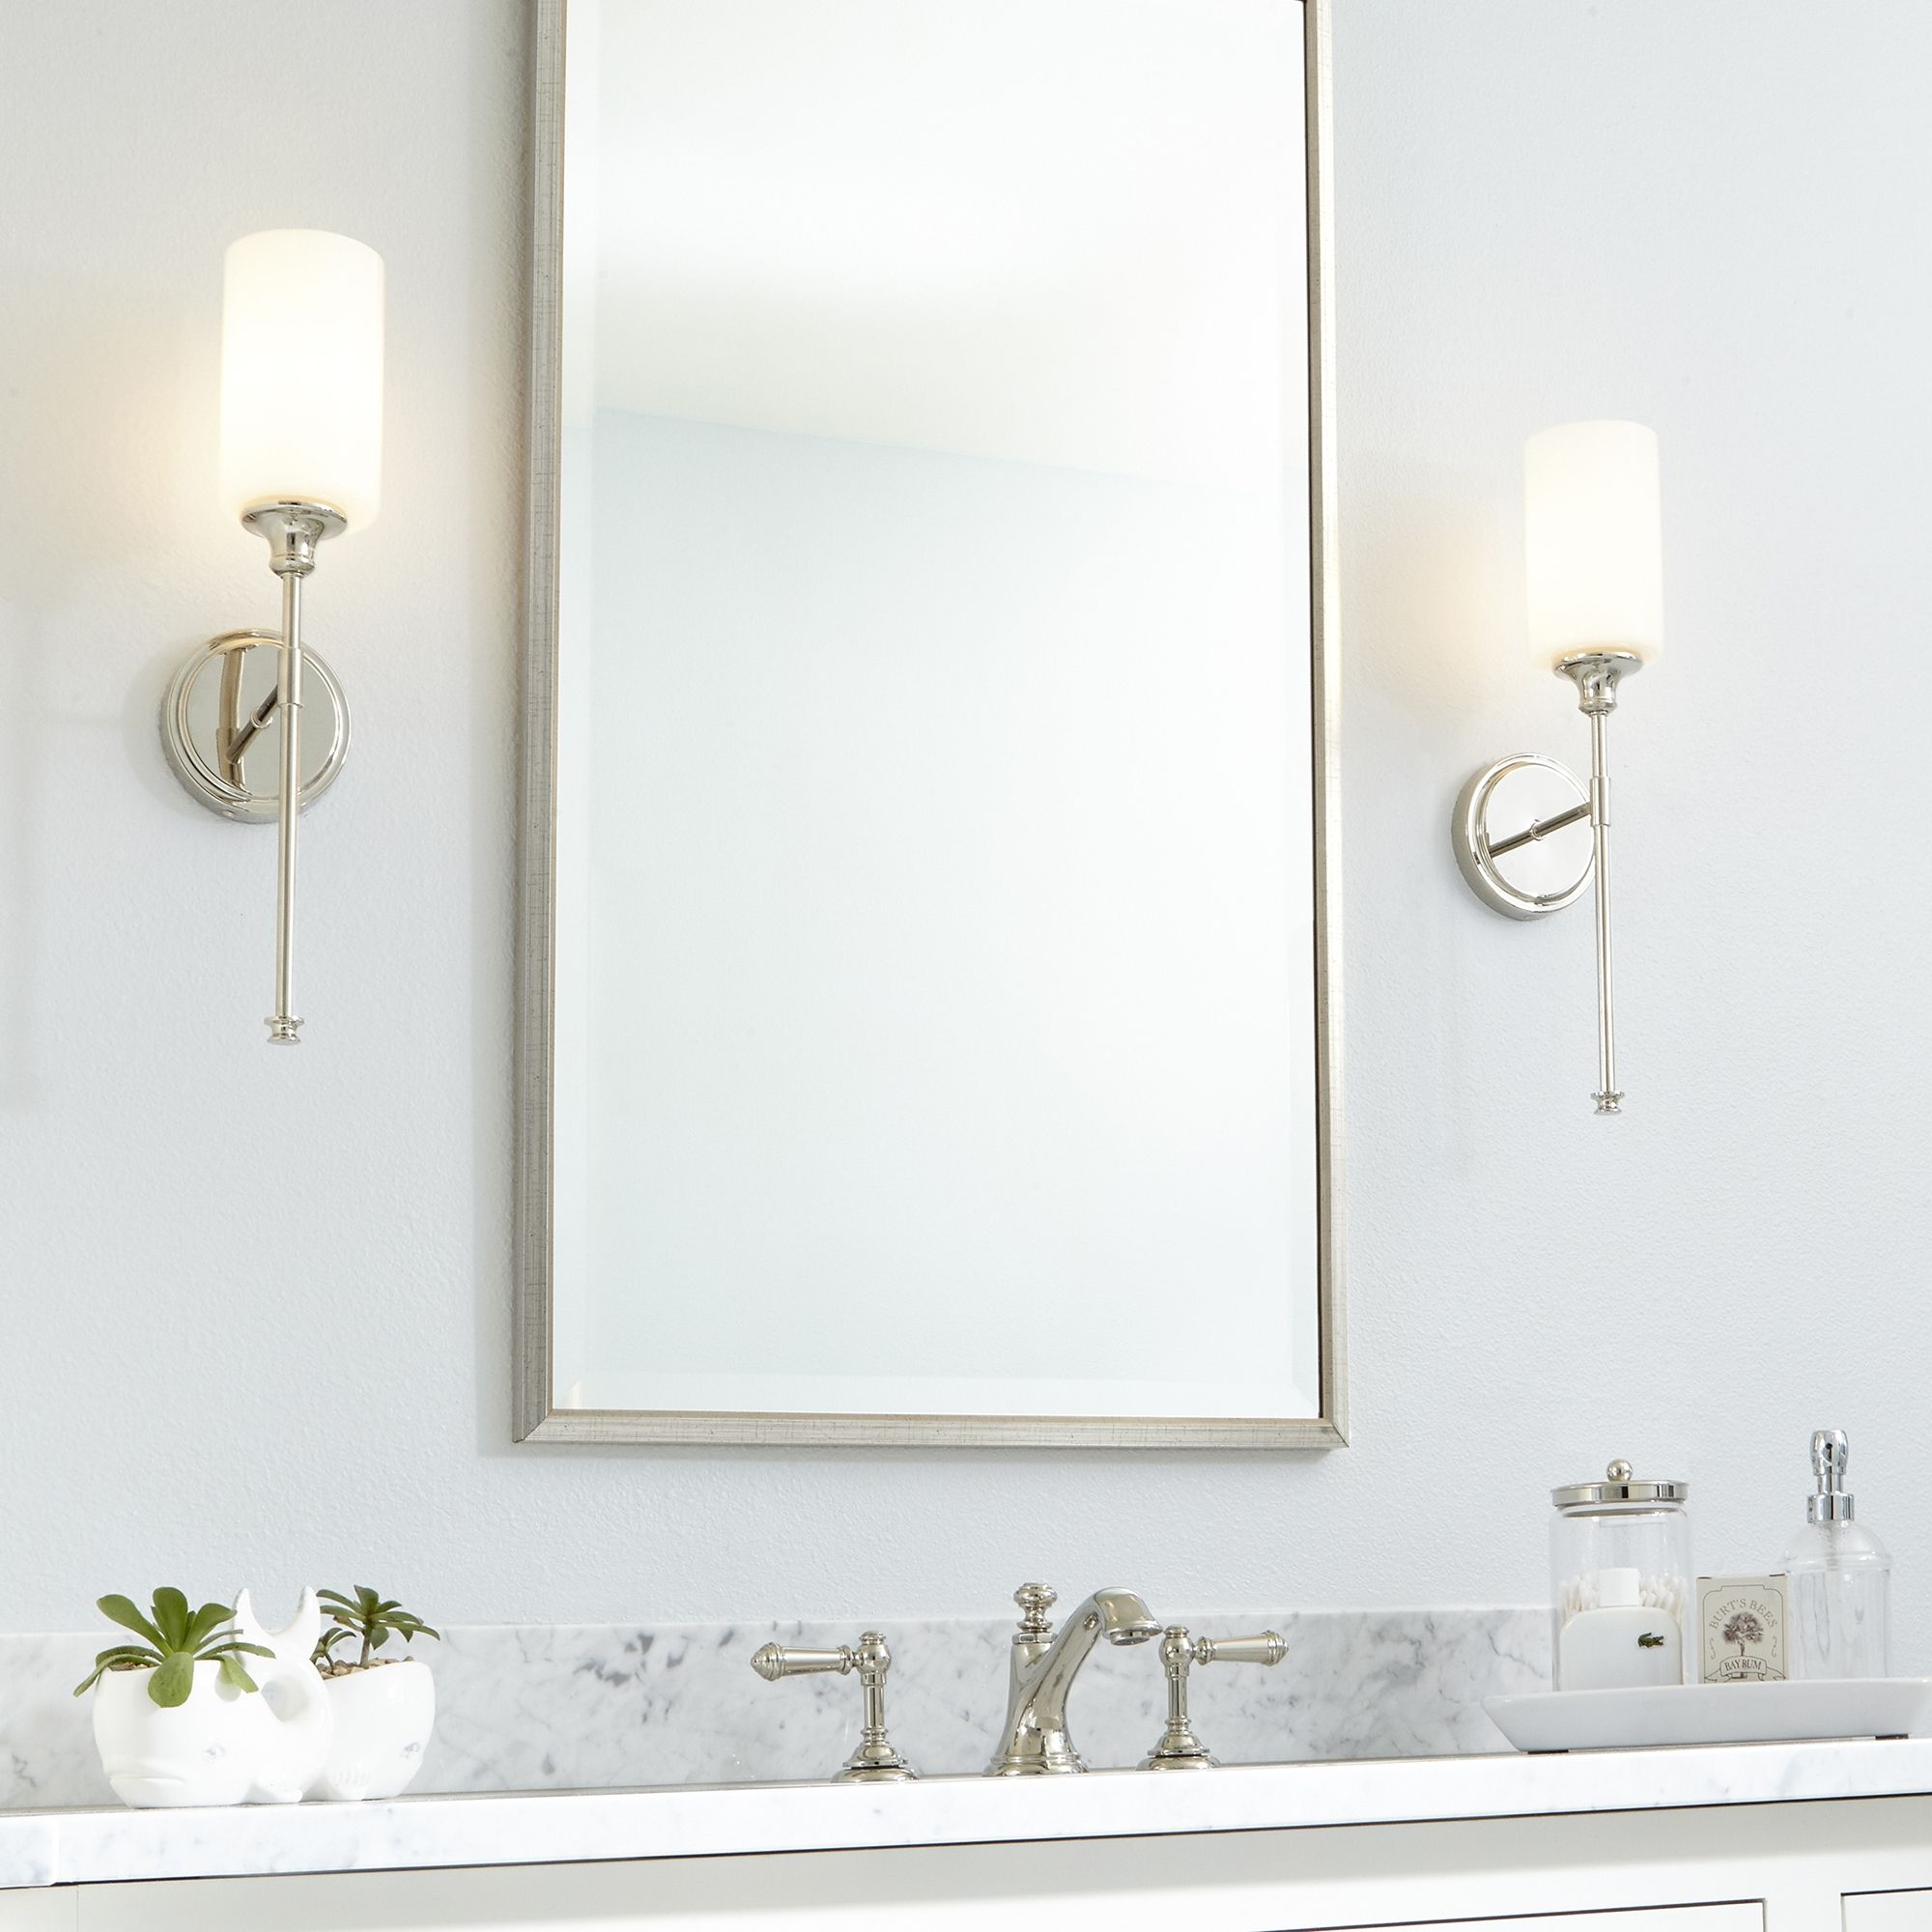 Bathroom Lighting Bathroom Sconces Bathroom Sconce Lighting Wall Sconces